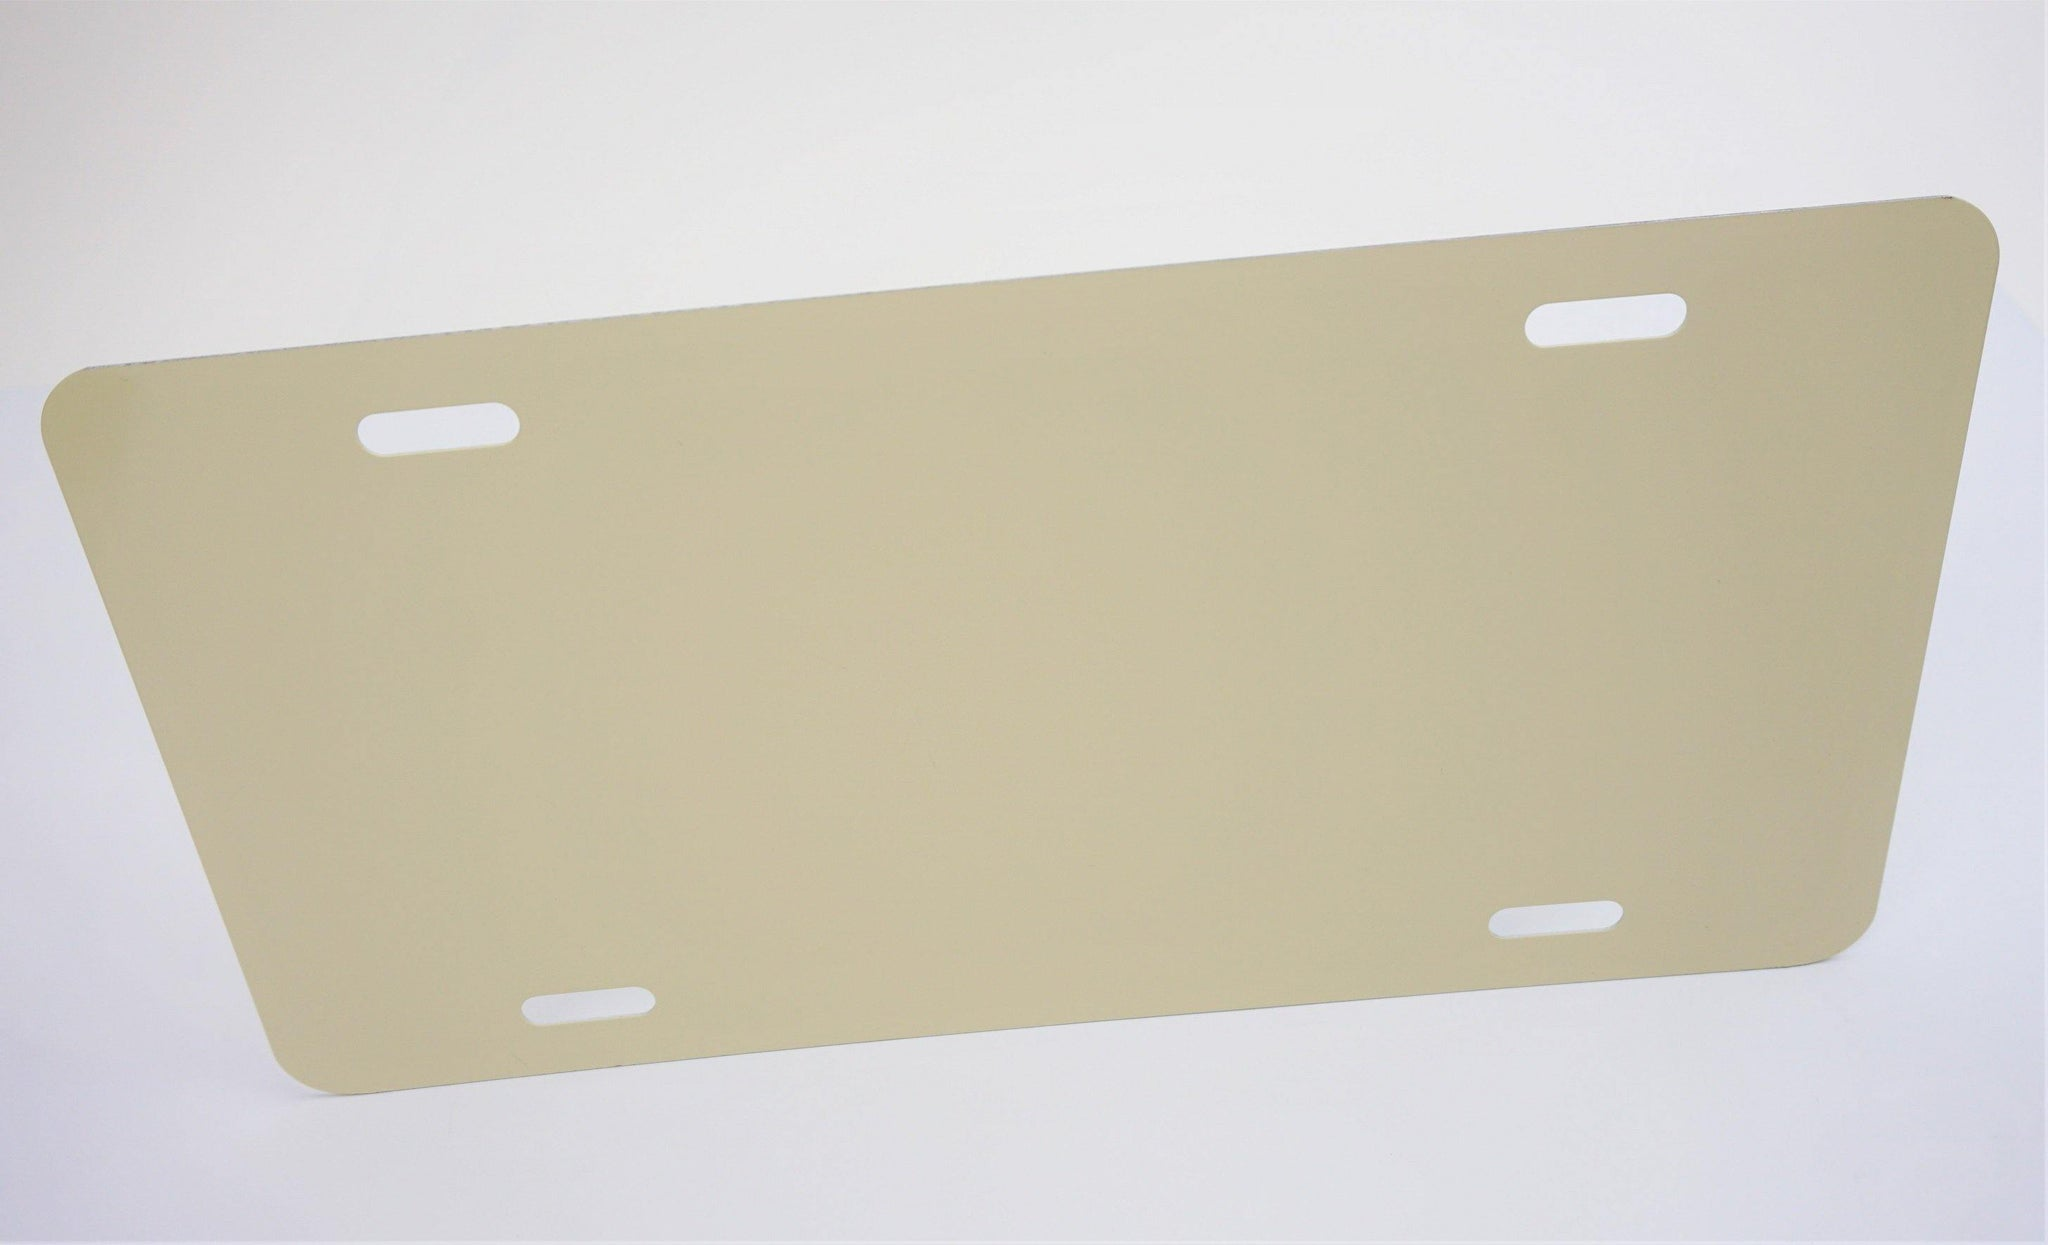 Anodized Aluminum License Plate Blanks Gauge .020 0.5mm 10 Pack-$3.99//Each - 12x6